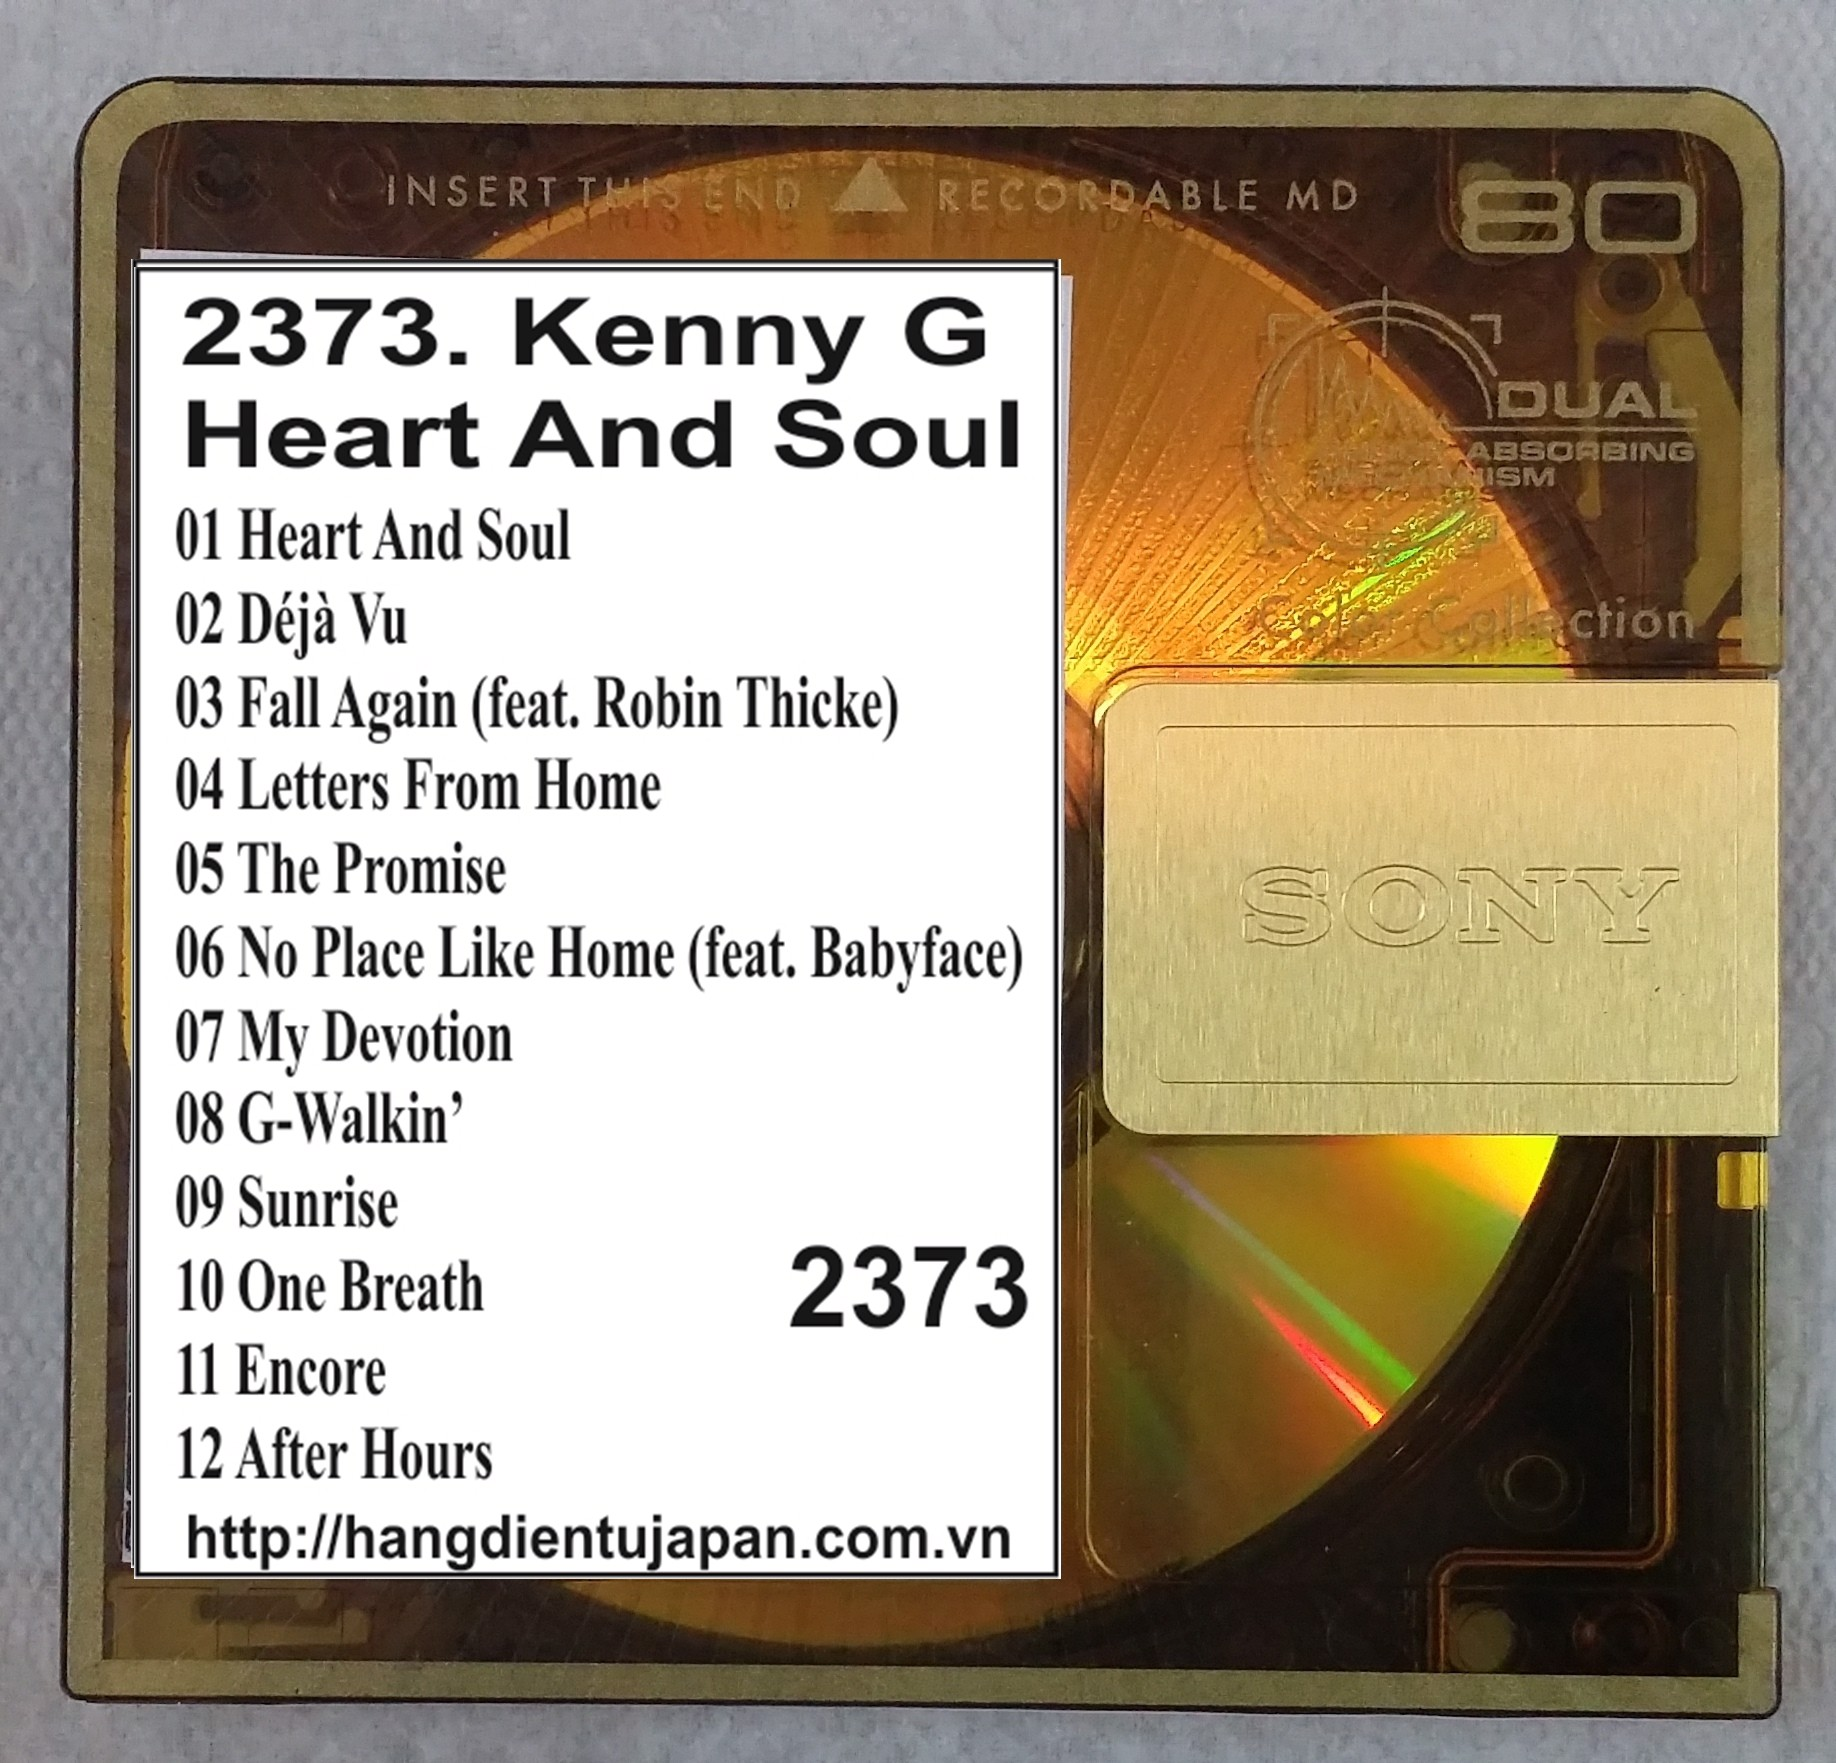 2373. Kenny G - Heart And Soul